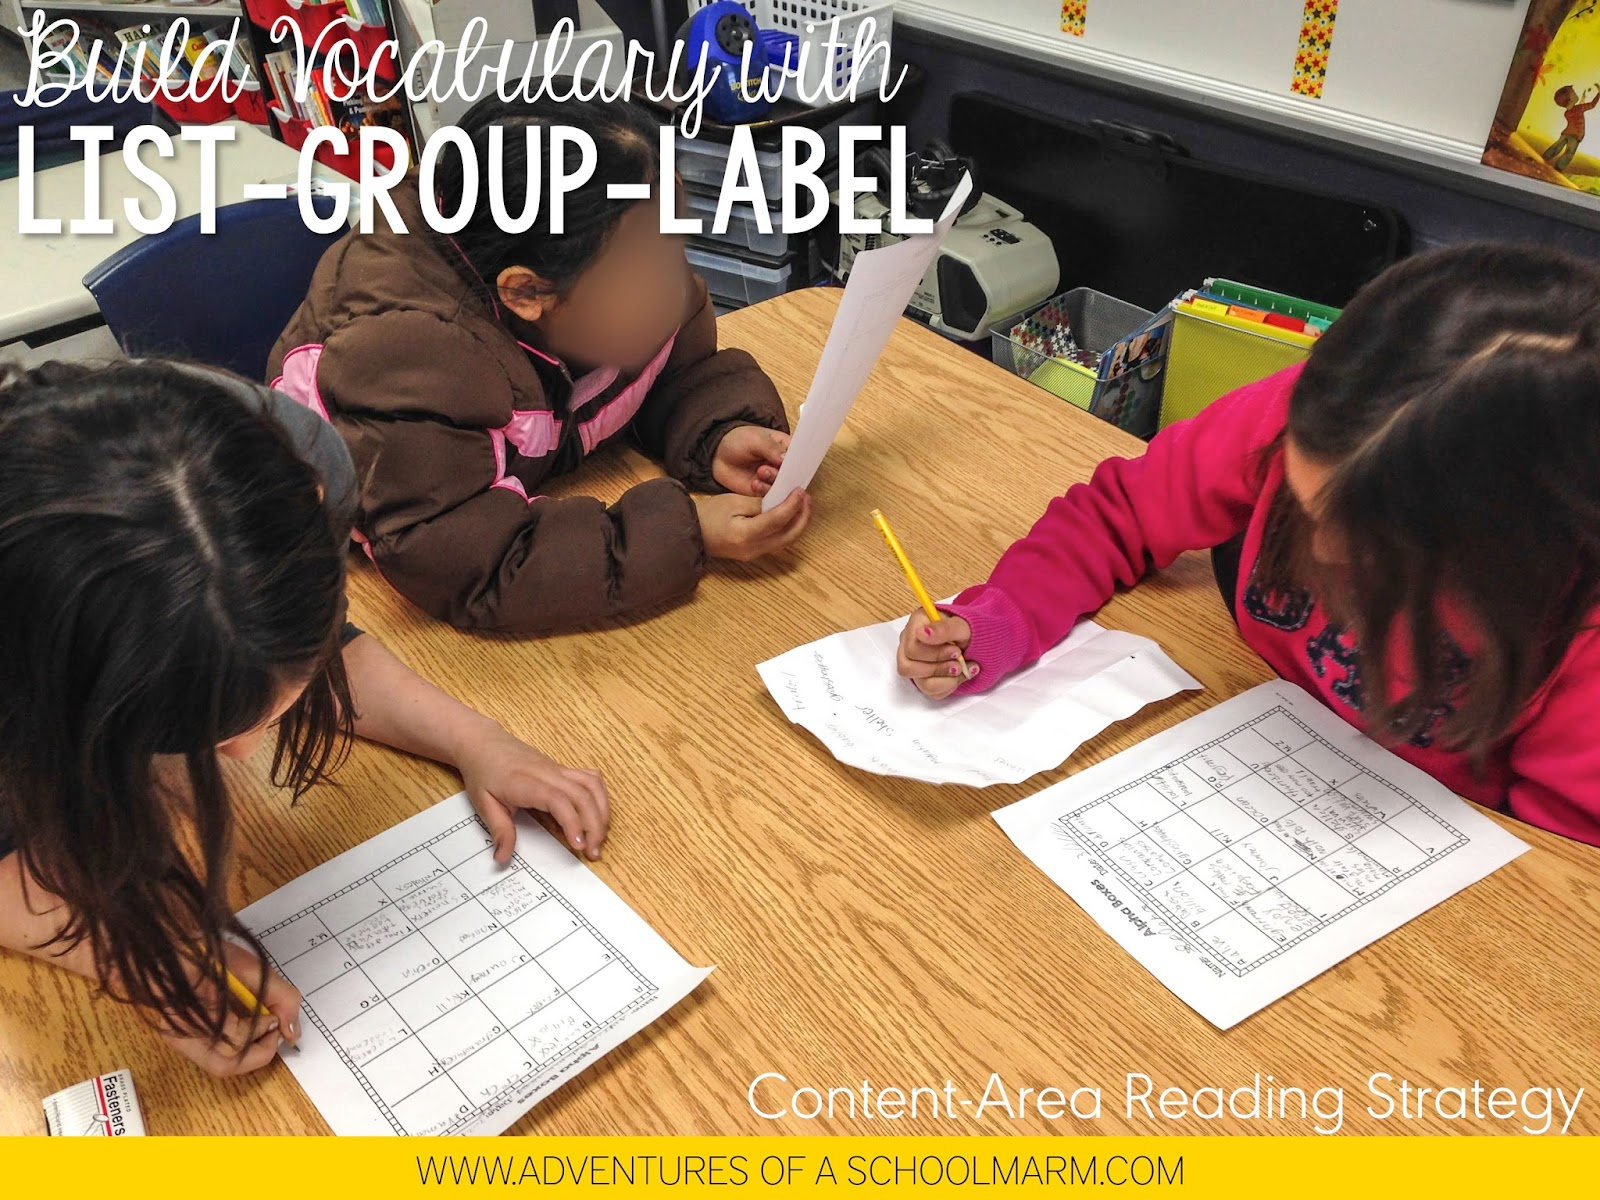 List-Group-Label is another one of my favorite strategies for increasing students' vocabulary. Grouping and labeling the words activates their critical thinking skills and helps them see relationships between the words. By connecting their prior knowledge to new learning, they are able to form a lasting understanding of what the words mean. Great for activating critical thinking skills, connecting prior knowledge to new learning, and encouraging divergent thinking!